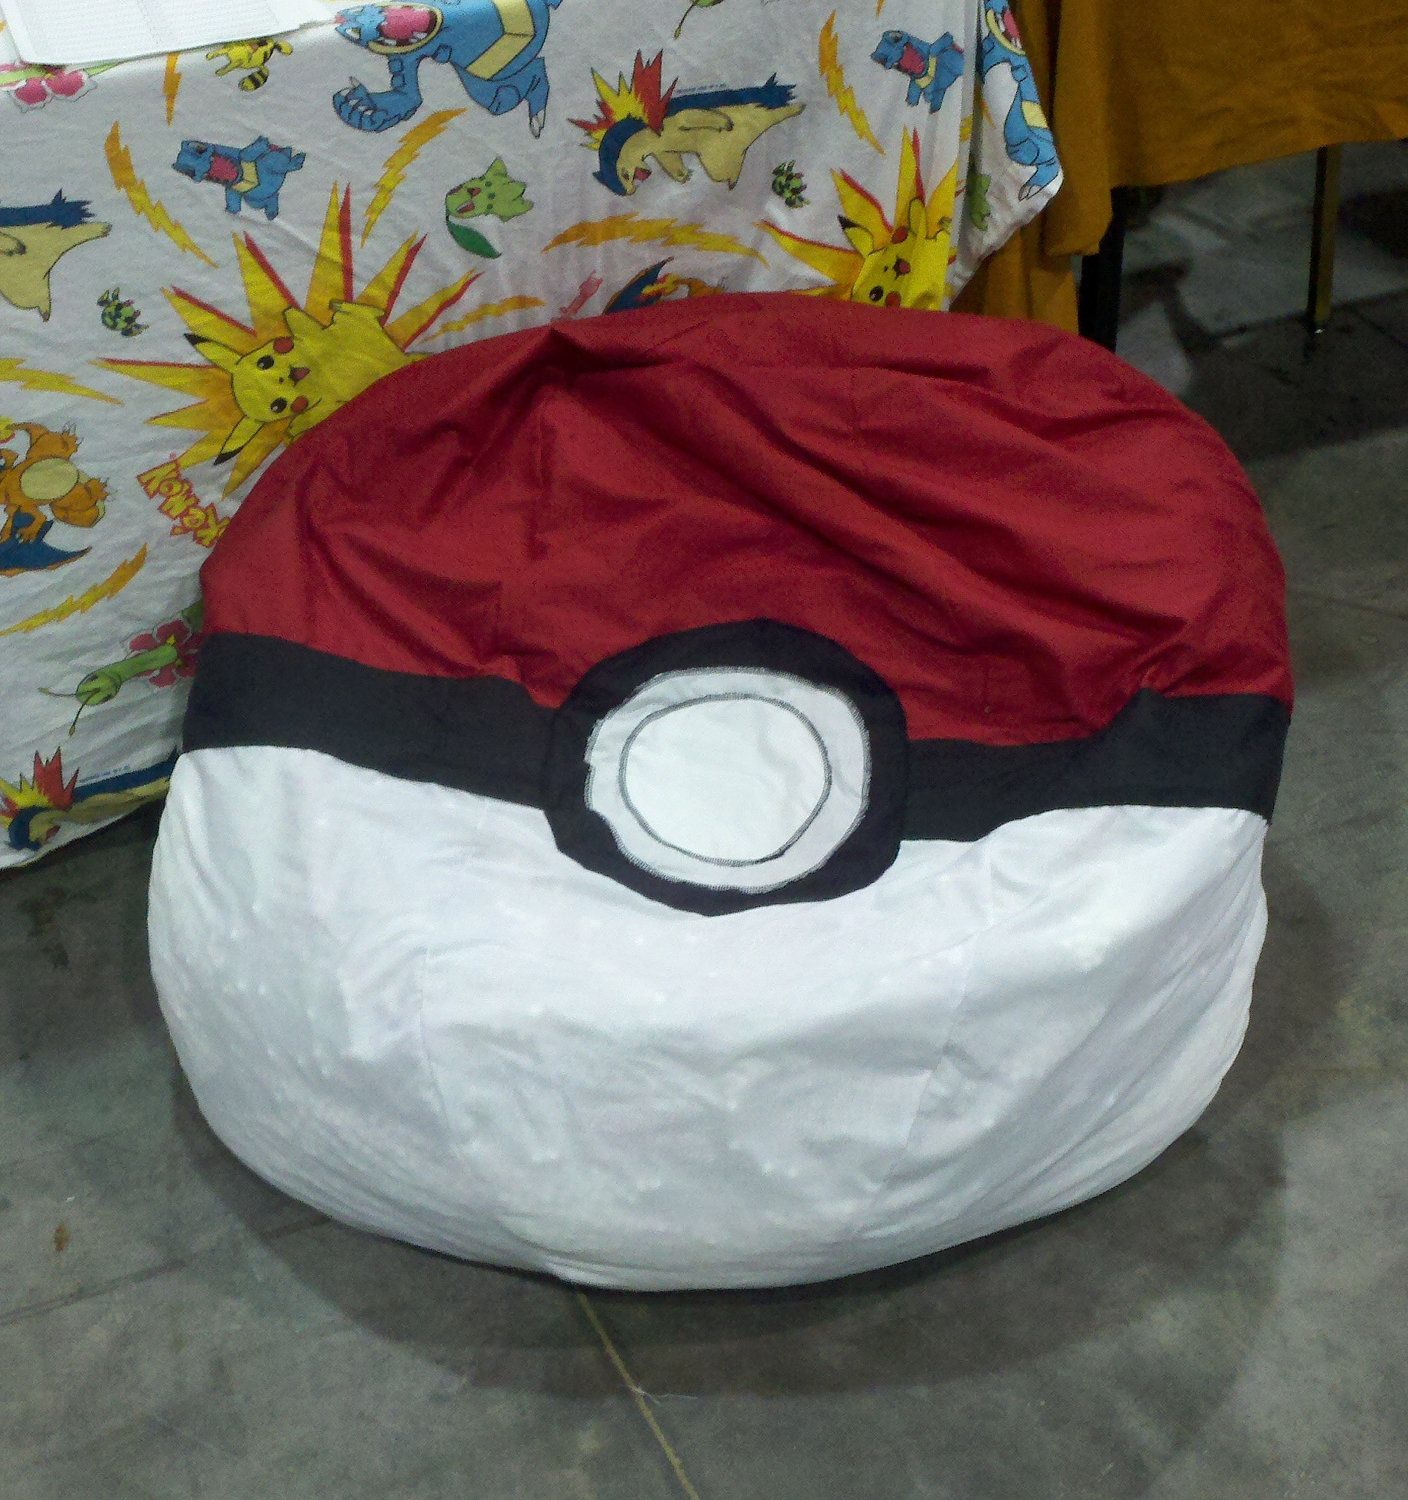 Pokeball Bean Bag Chair Cover $100 00 via Etsy